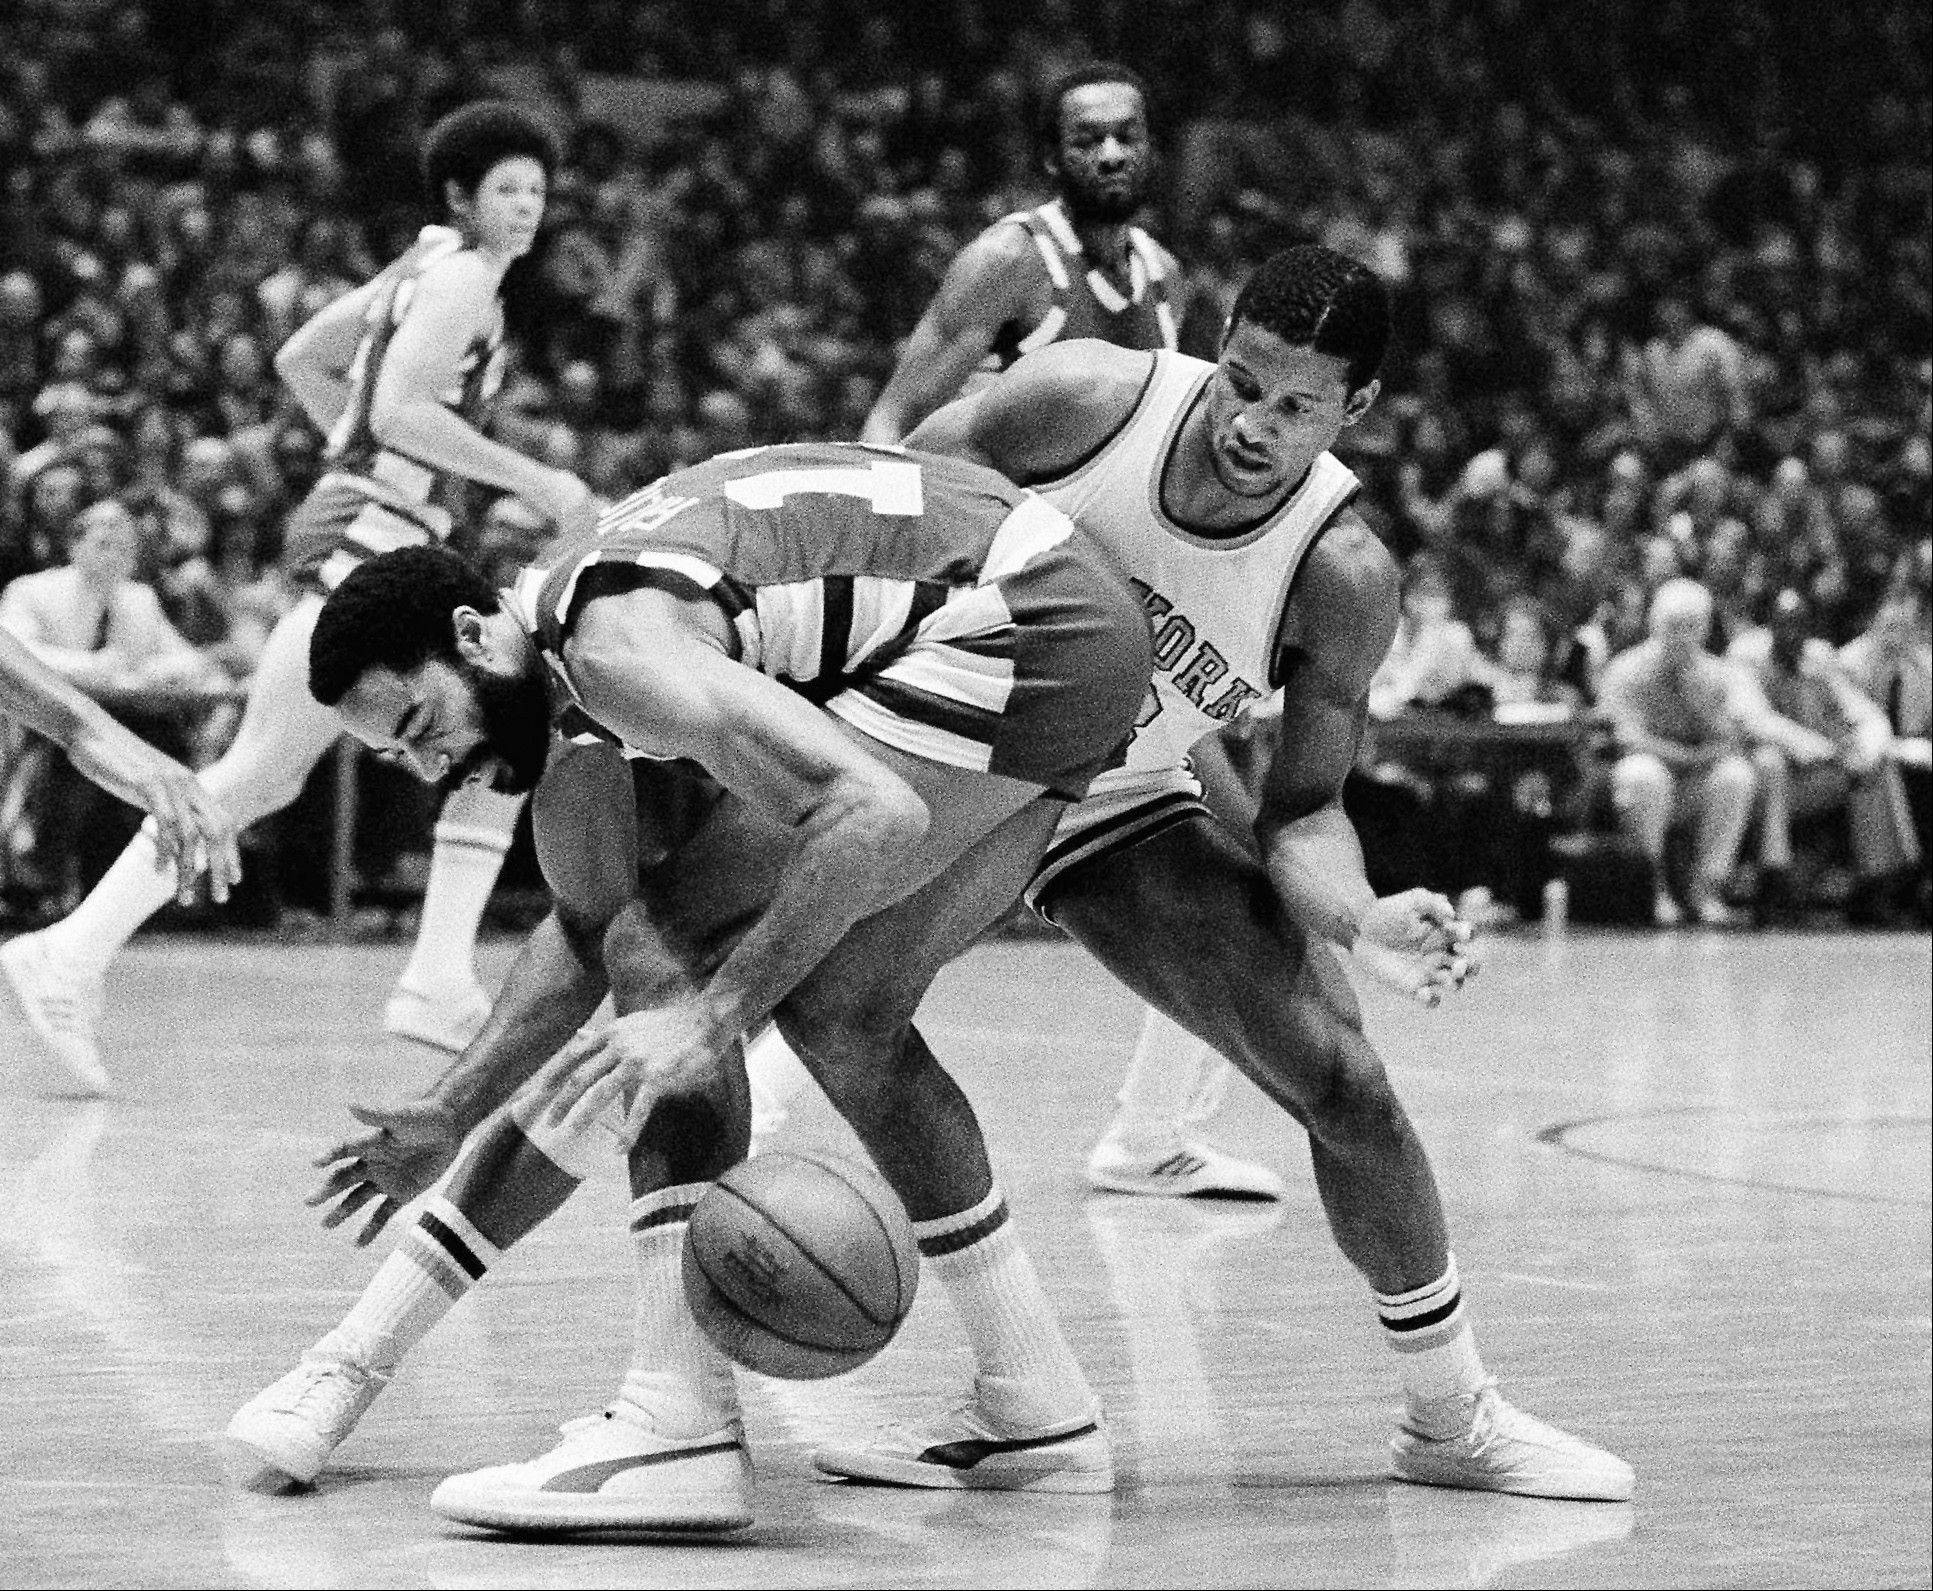 Associated Press/Oct. 25, 1977Cleveland Cavaliers' Walt Frazier, left, and New York Knicks' Ray Williams vie for the ball during the second half of an NBA basketball game at New York's Madison Square Garden.